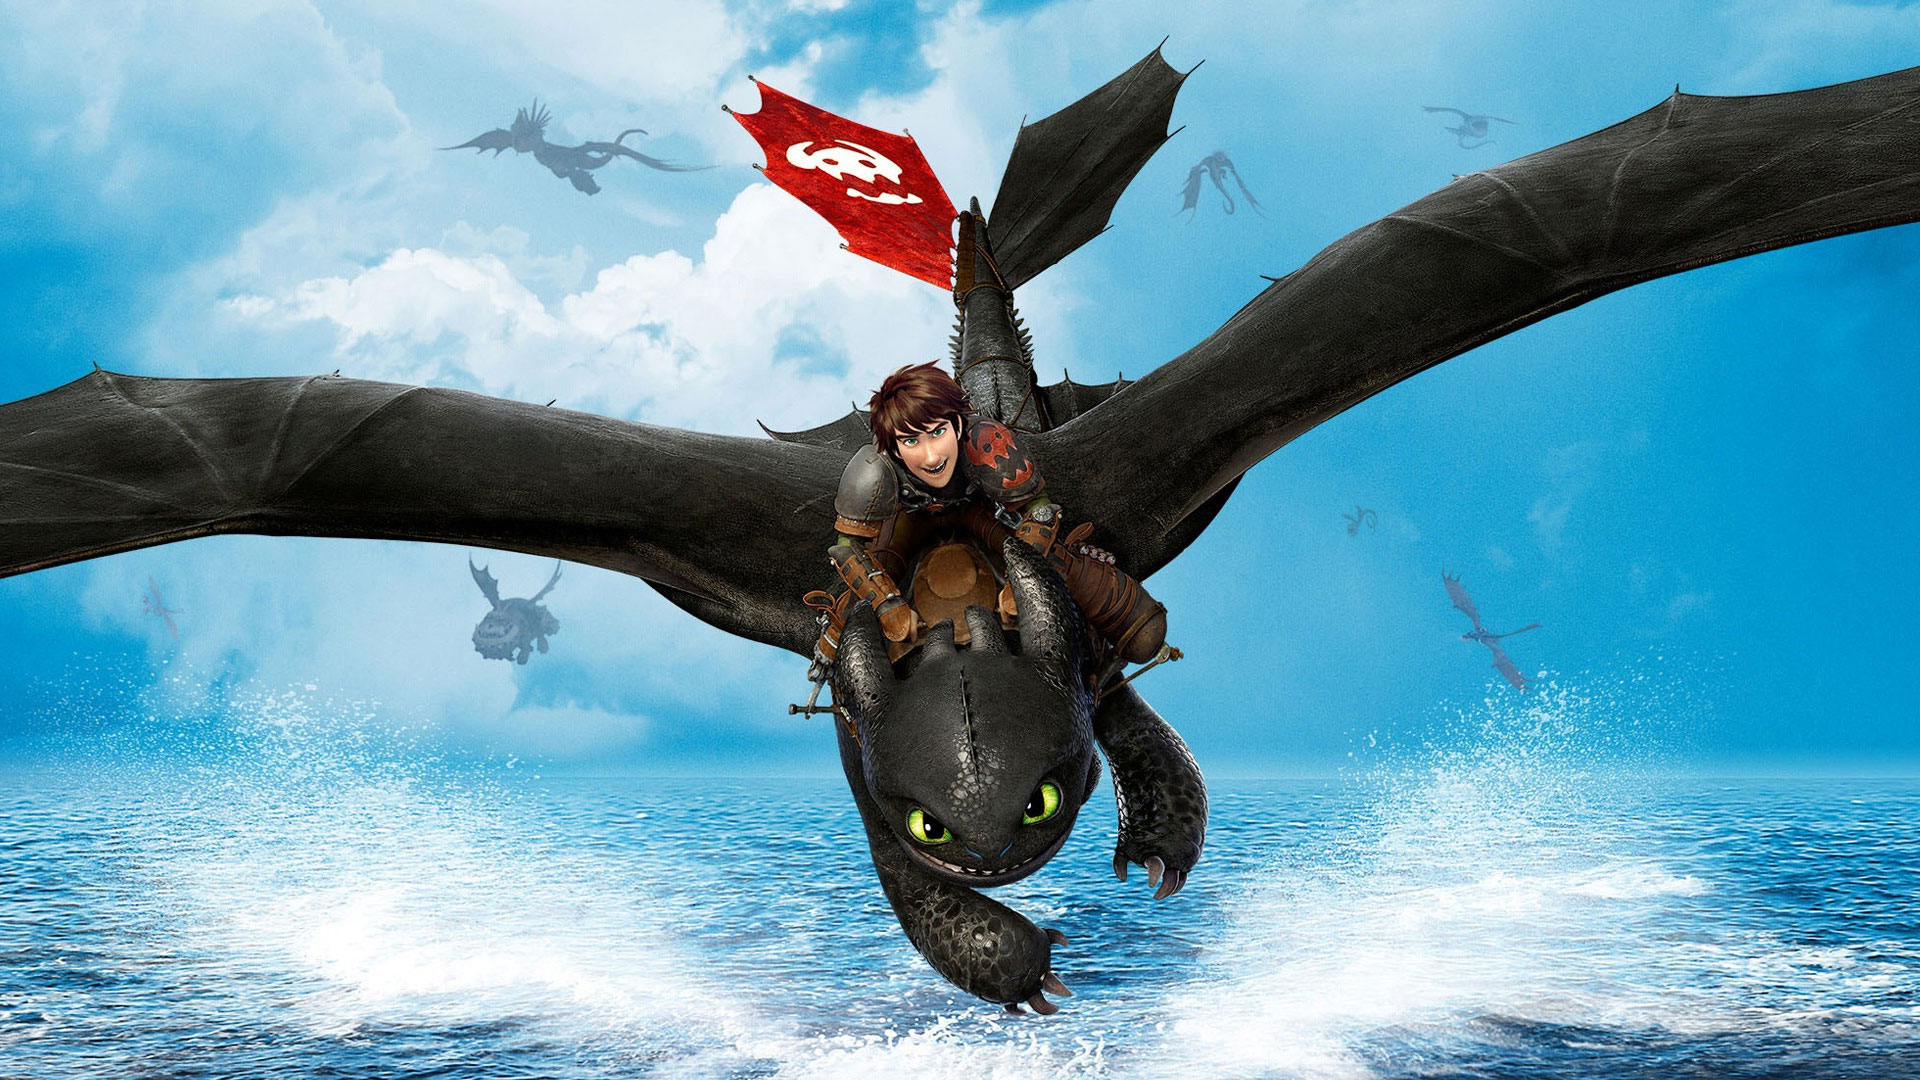 How to train your dragon 2 hd wallpaper 1920×1080